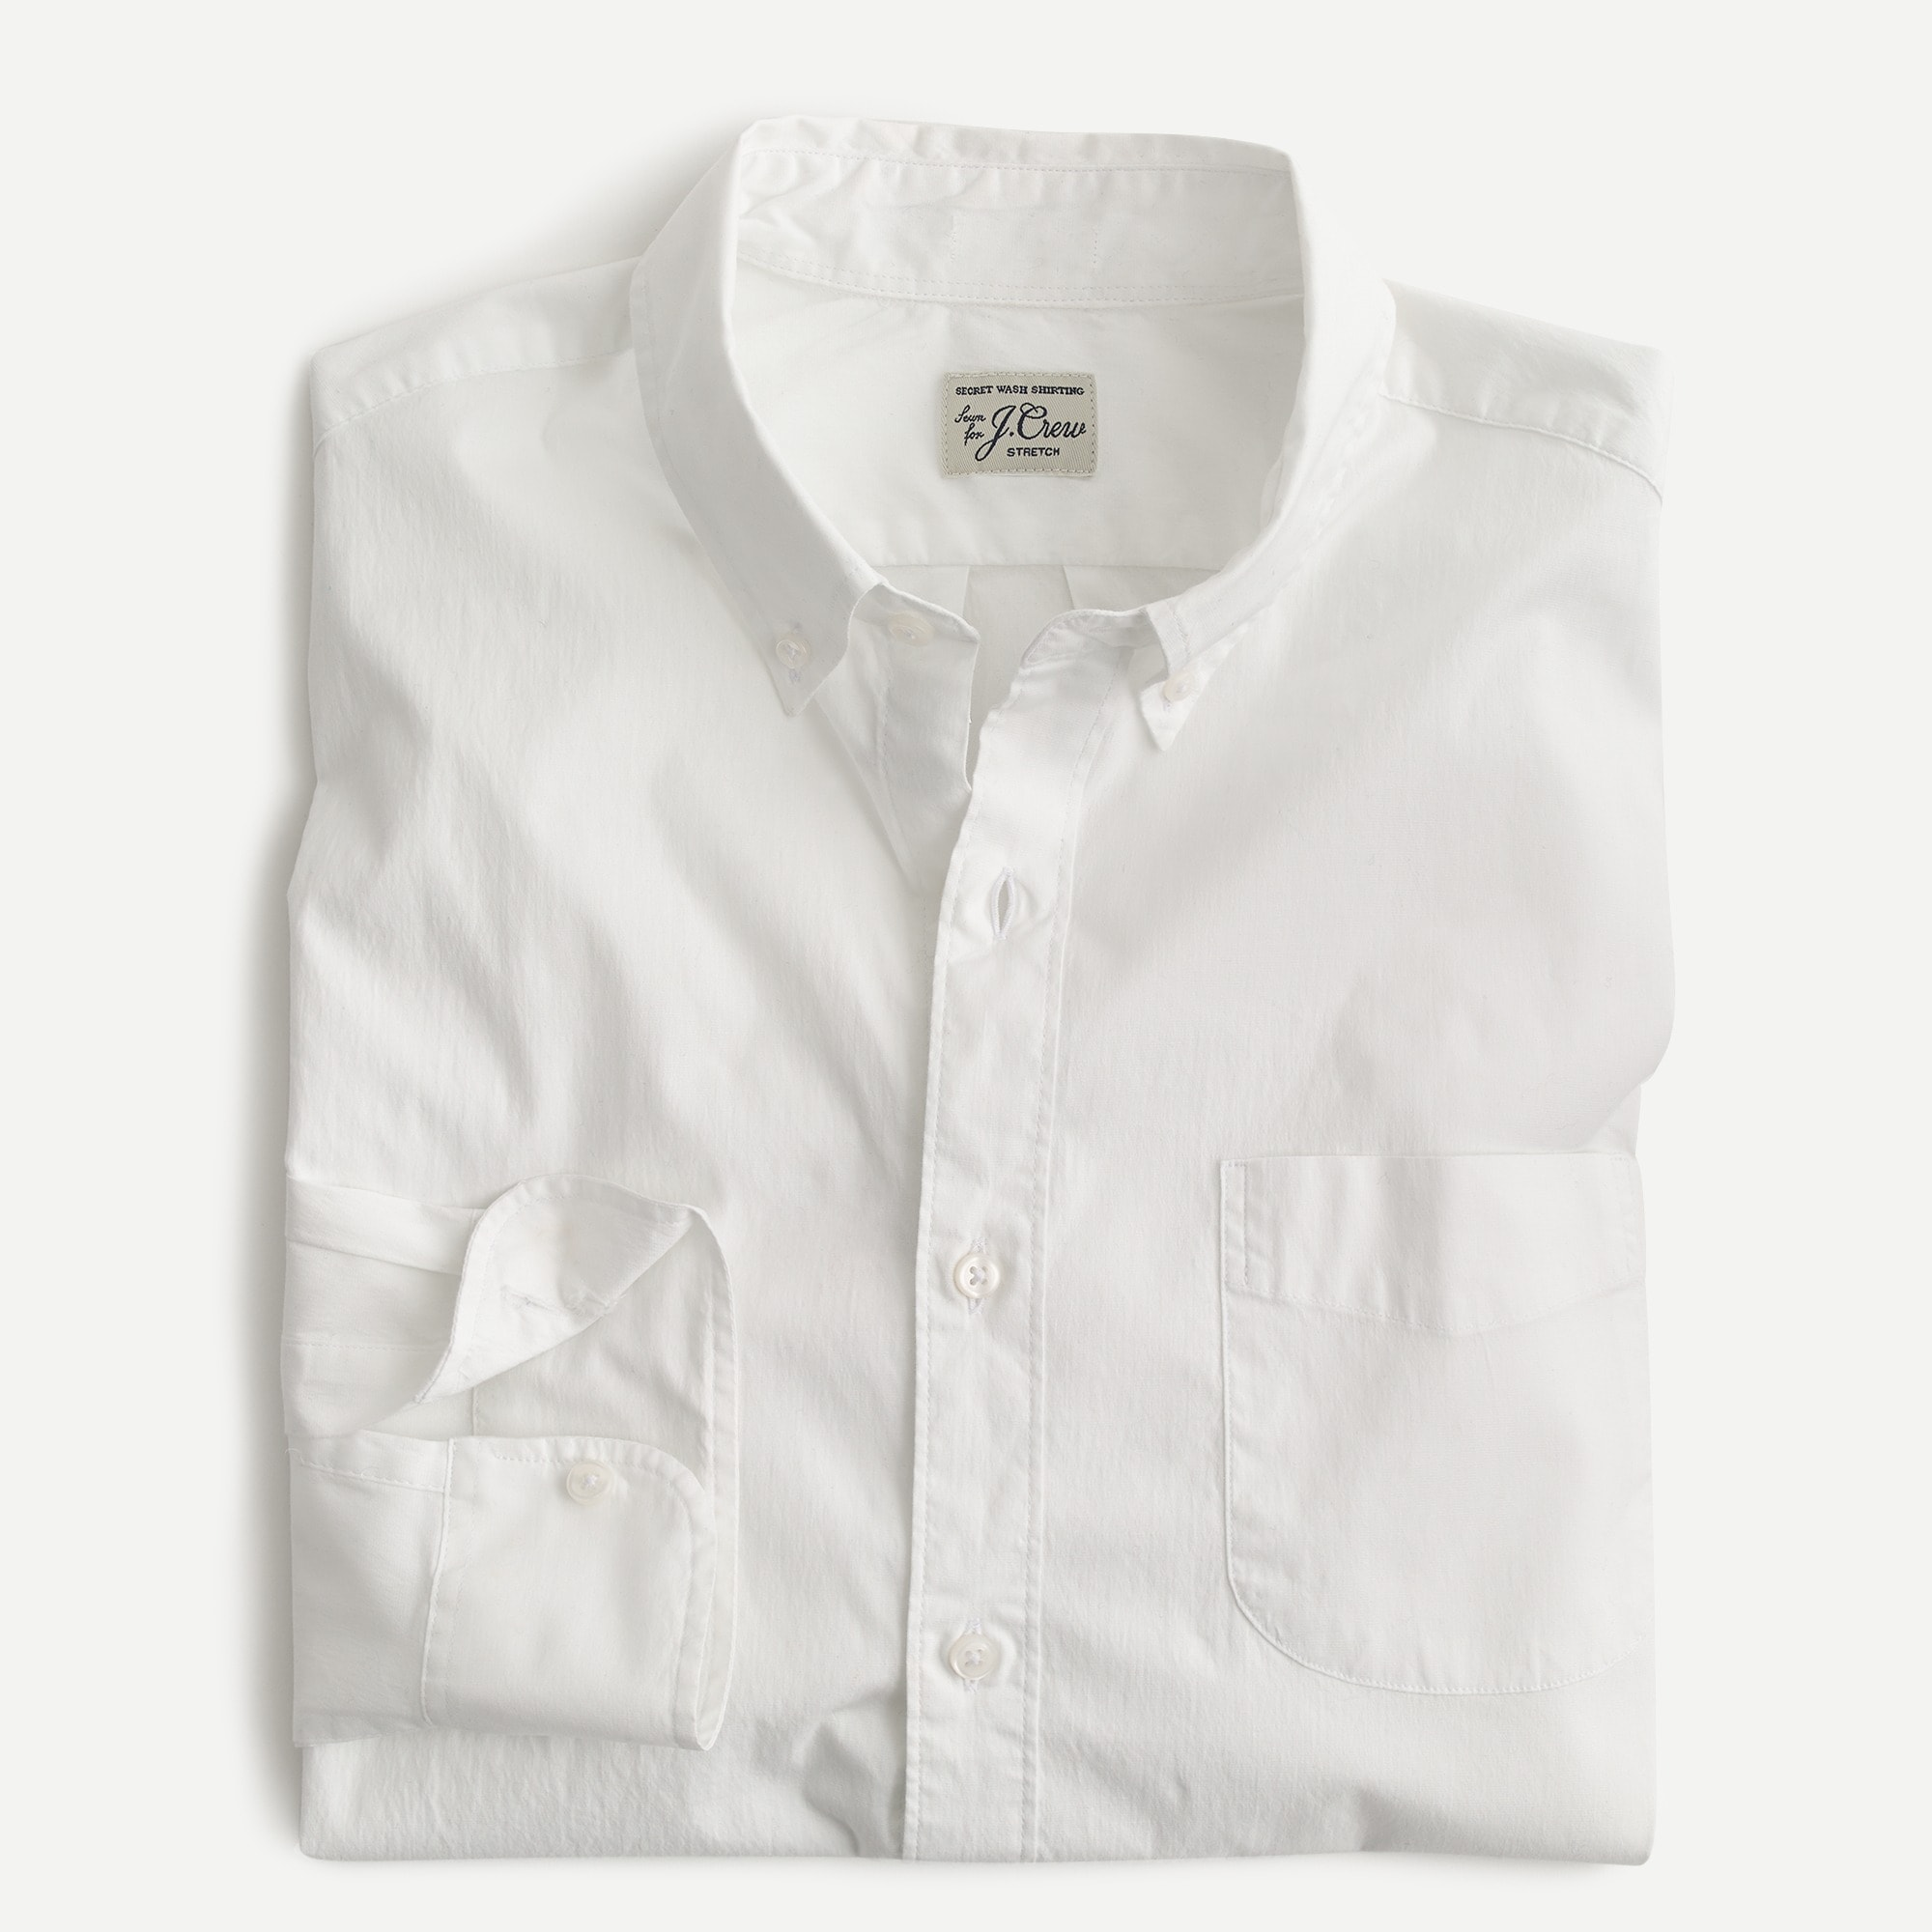 mens Slim stretch Secret Wash shirt in white poplin